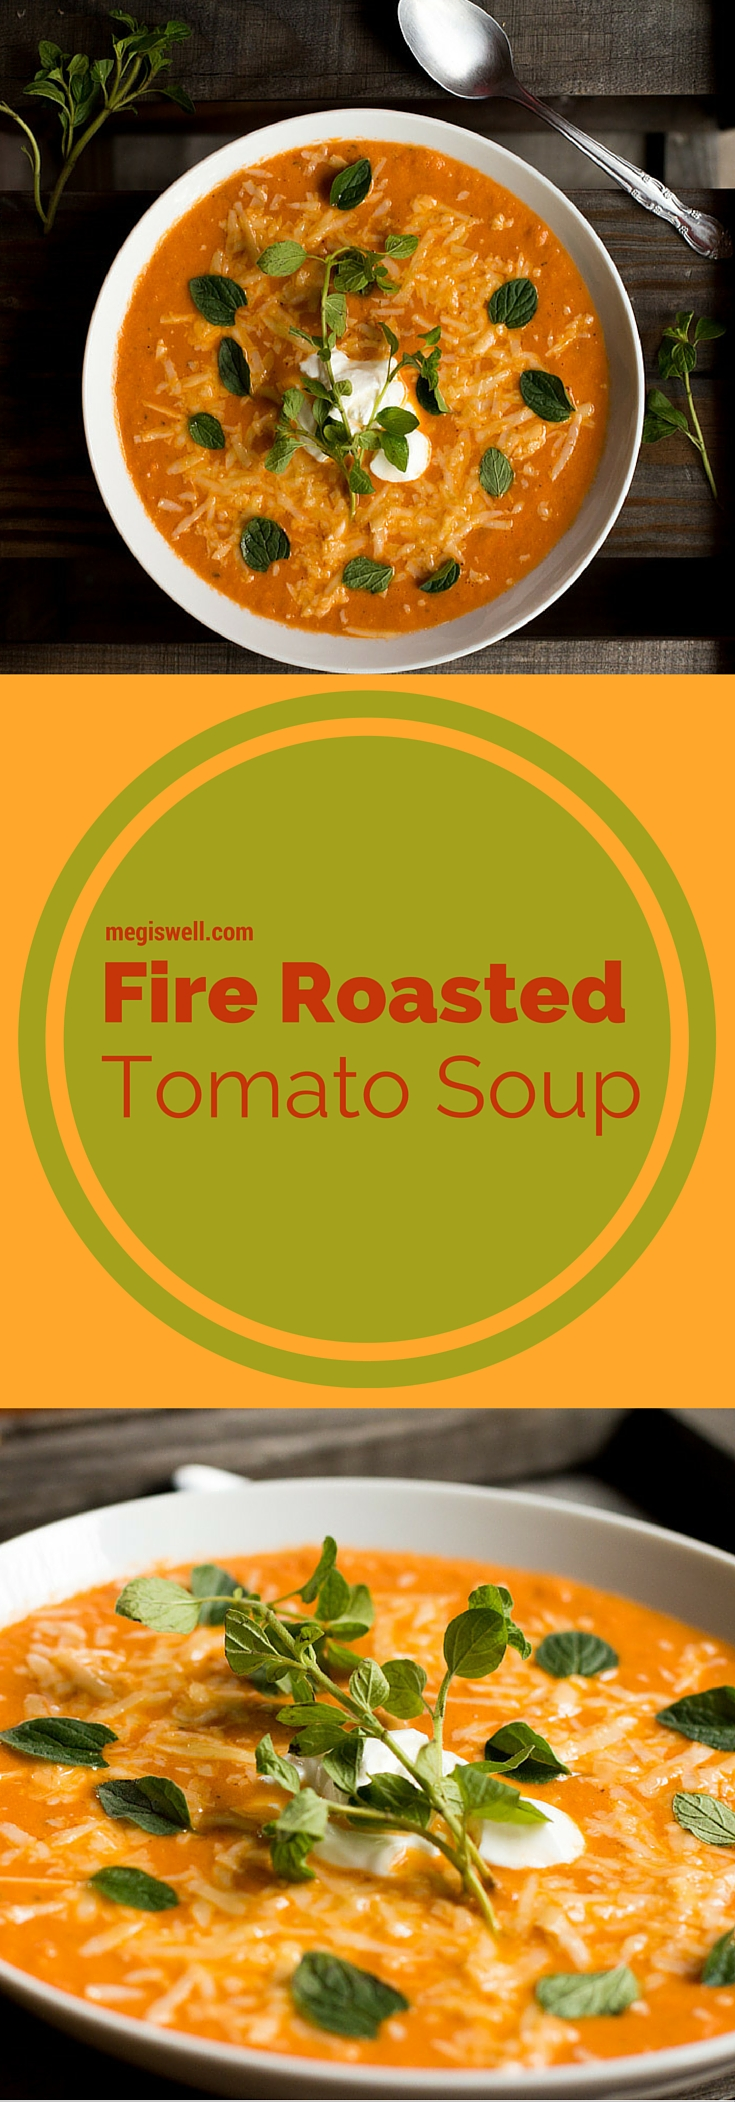 Fire Roasted Tomato Soup. Fire roasted tomatoes and red pepper flakes give this soup some spice while non-fat greek yogurt is used in place of cream, making this a quick, easy, and healthy soup.